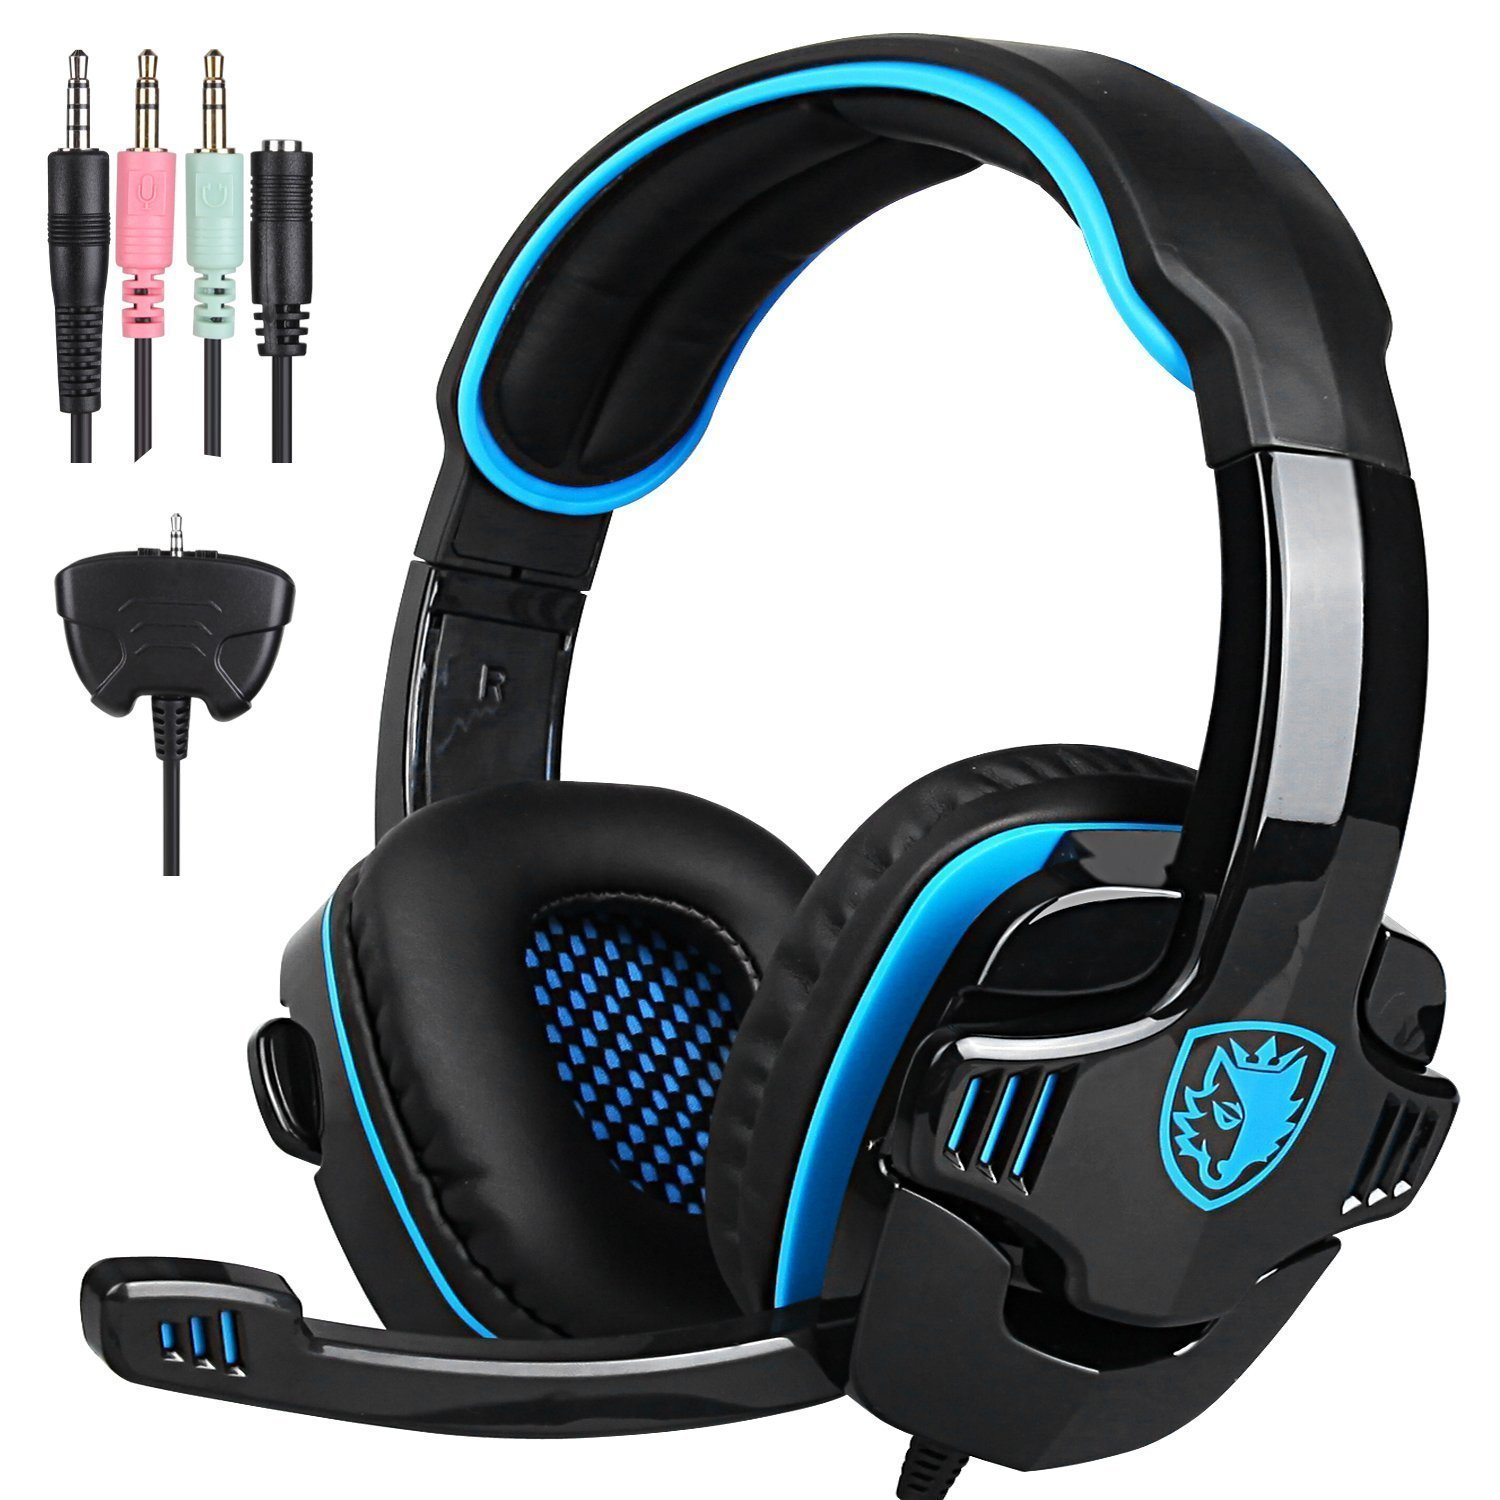 Sades PS4 SA-708GT Gaming Headset Stereo Over Ear Wired 3.5mm Headphone with Microphone for Laptop/PC/Mac/PS4/Ipad/Ipod/Phones/Xbox One ( Blue black) by Sades